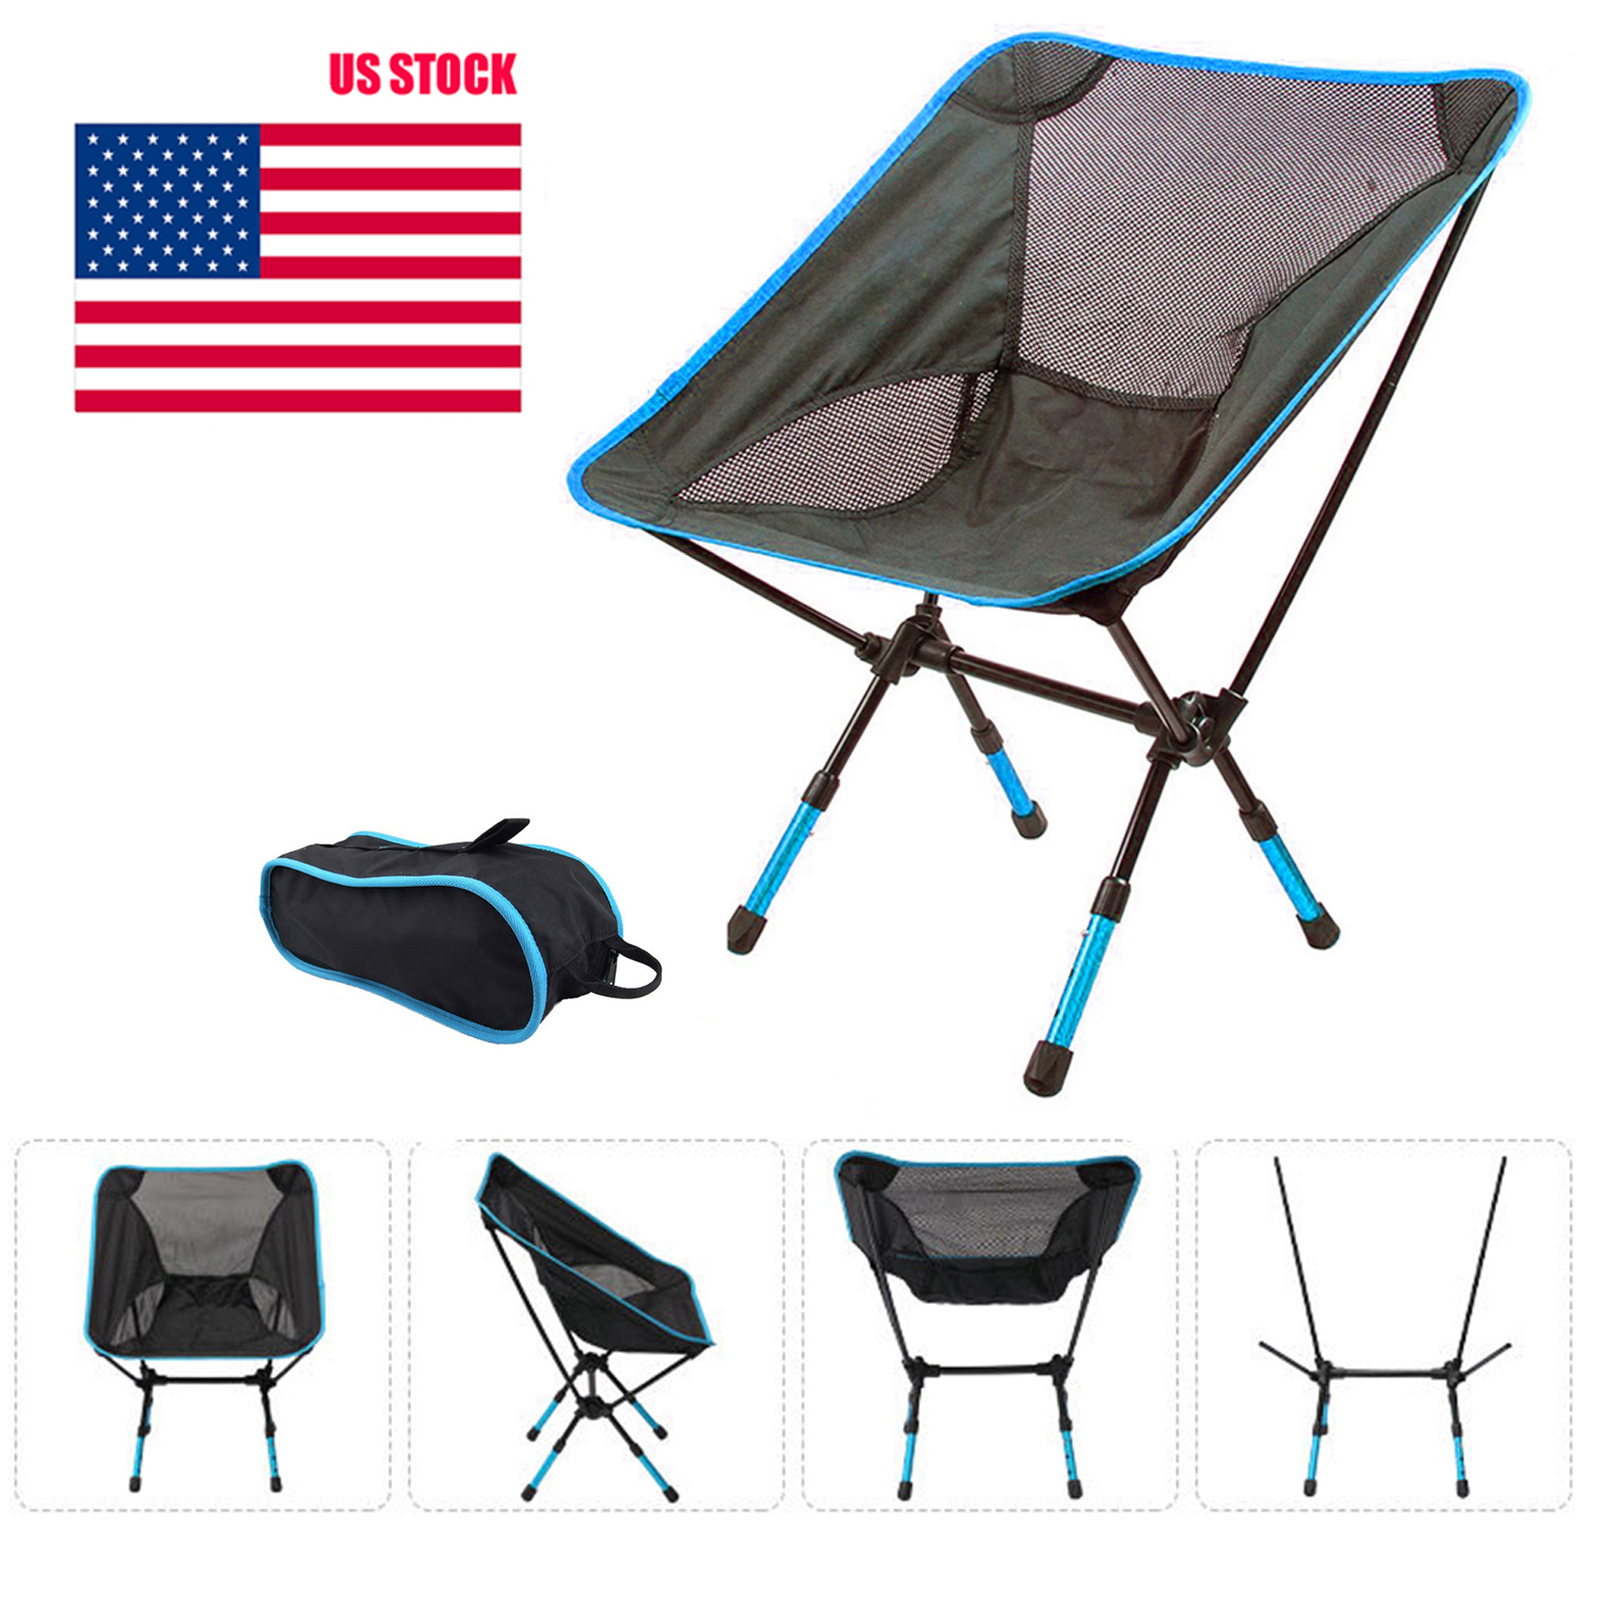 Adjustable Folding Chair Outdoor Camping Lightweight Portable Chair with Carry Bag for Picnic BBQ Beach Fishing Warehouse